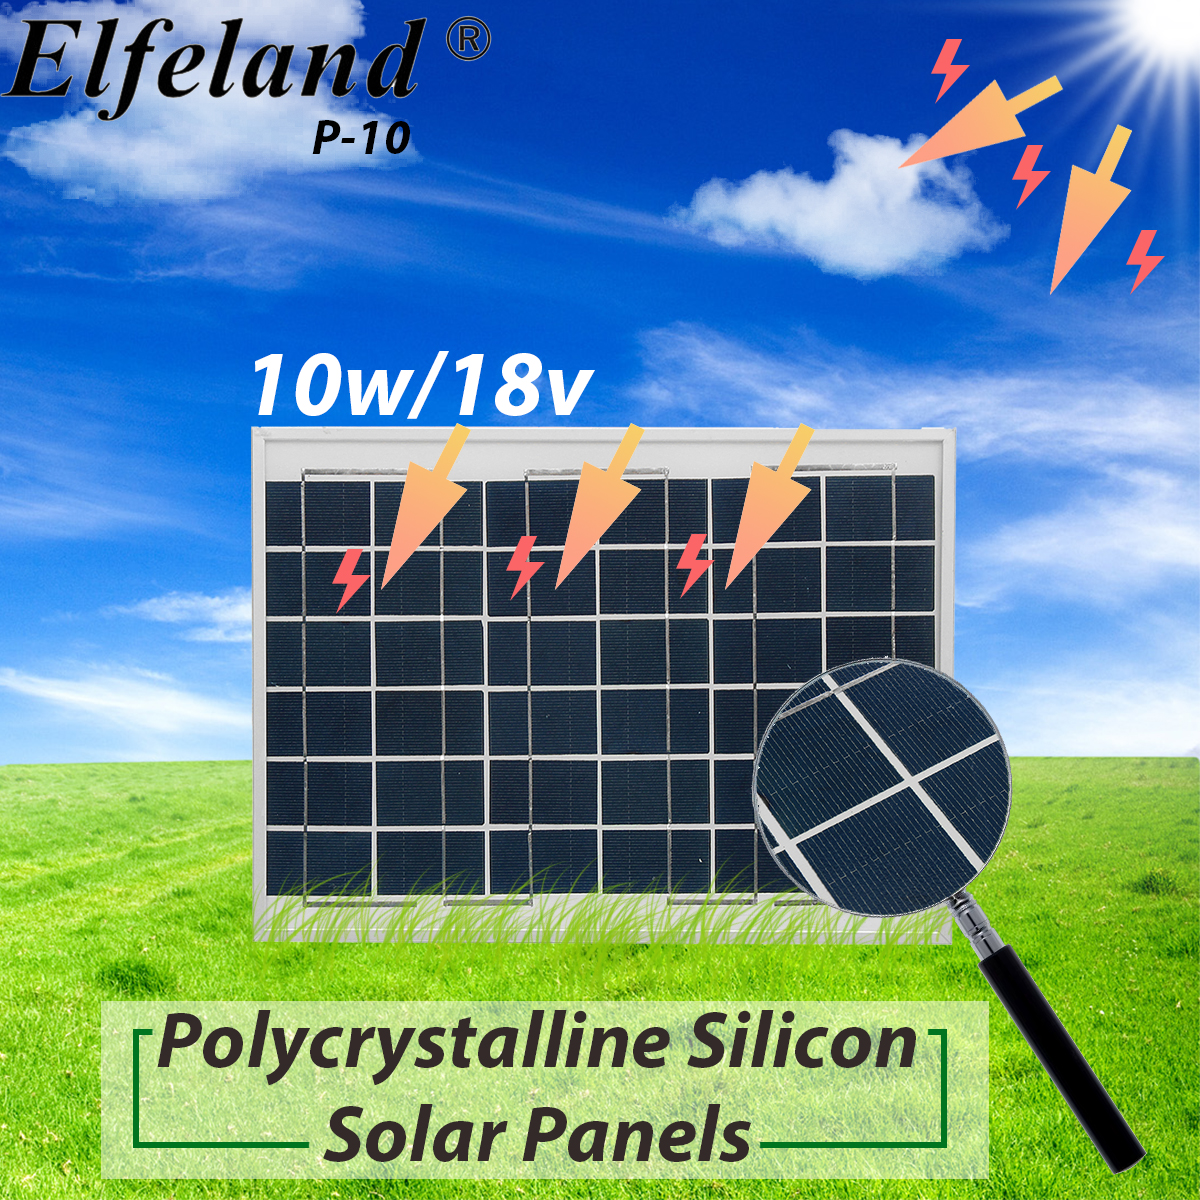 Silver/Black 10W 18V Polycrystalline Silicon Solar Panel With Junction Box For Car Batteries/RV/Boat